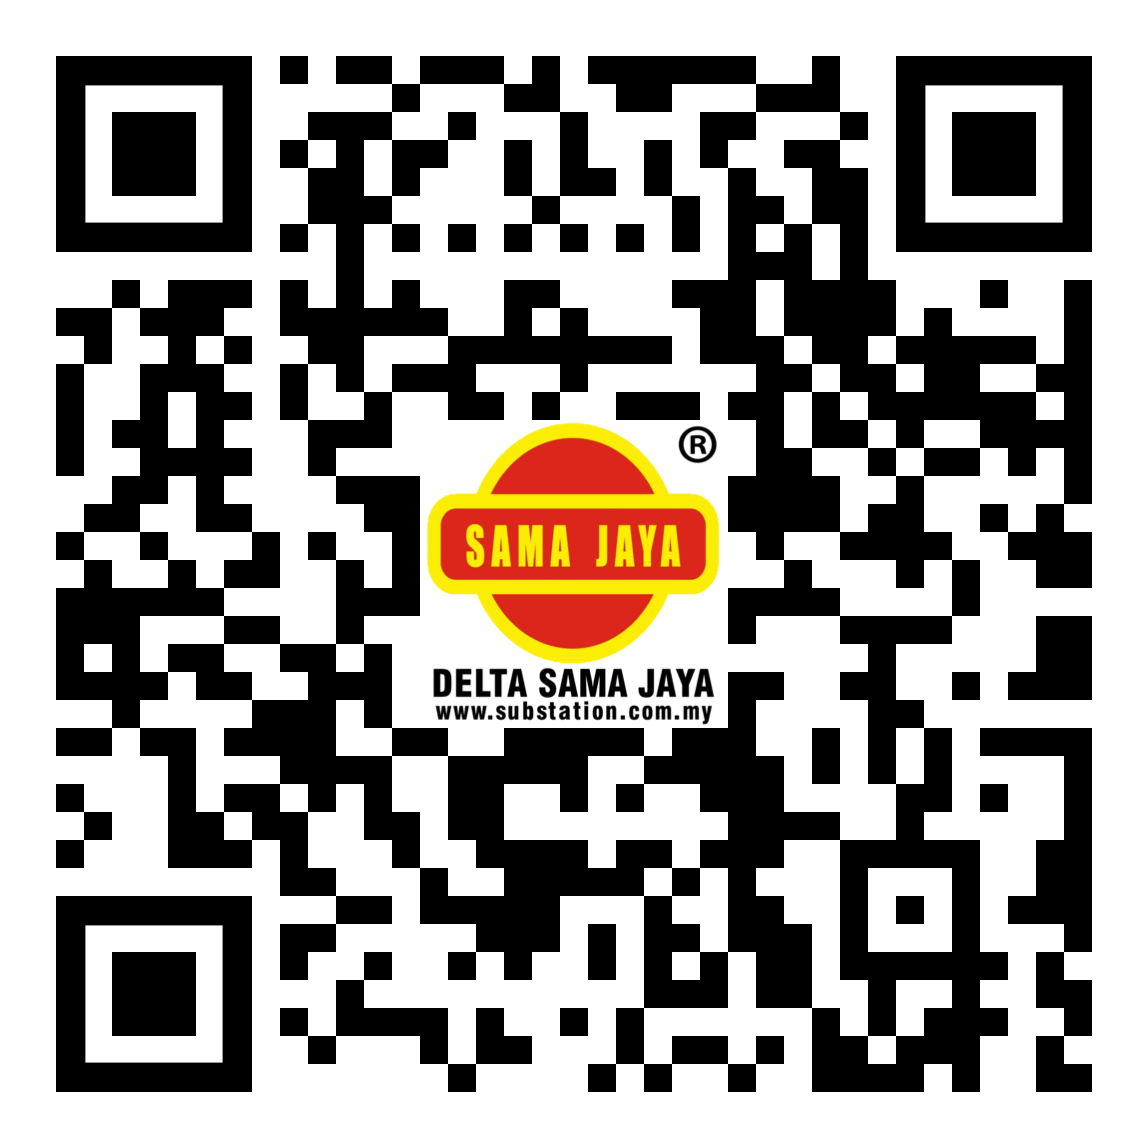 Scan For Our Location